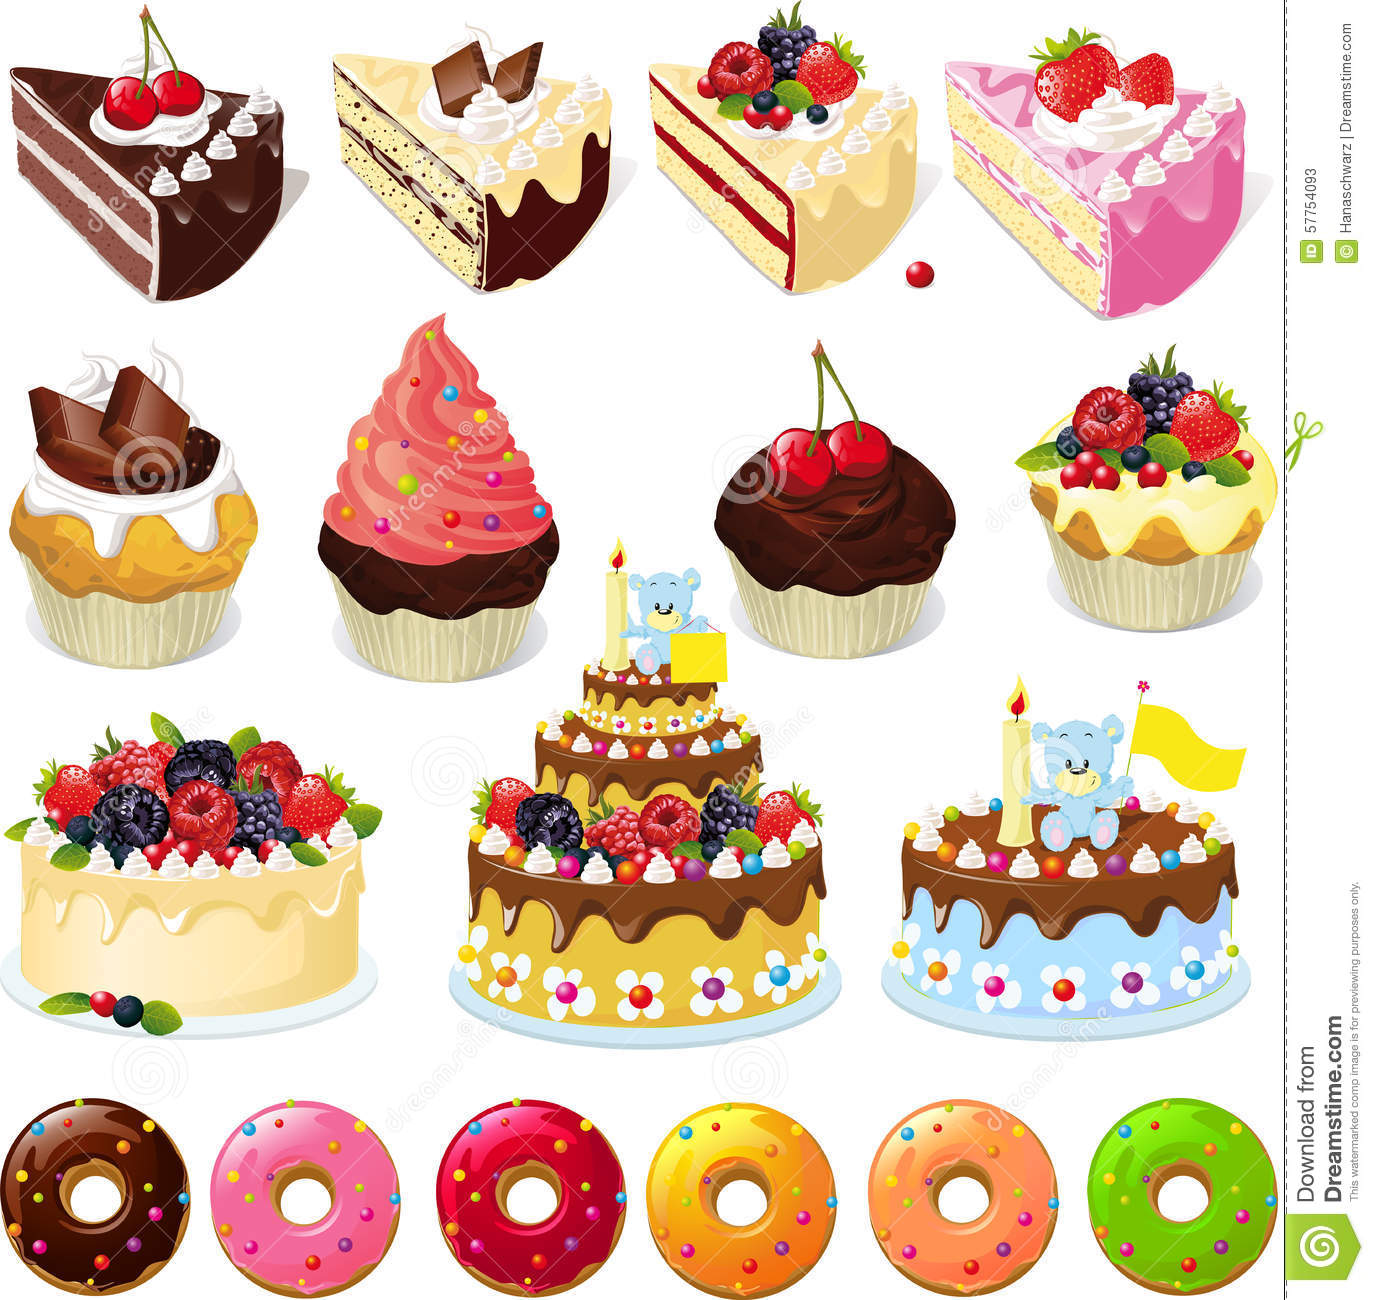 Cake Images Sweets : Set Of Sweets And Cakes - Vector Illustration Stock Vector ...